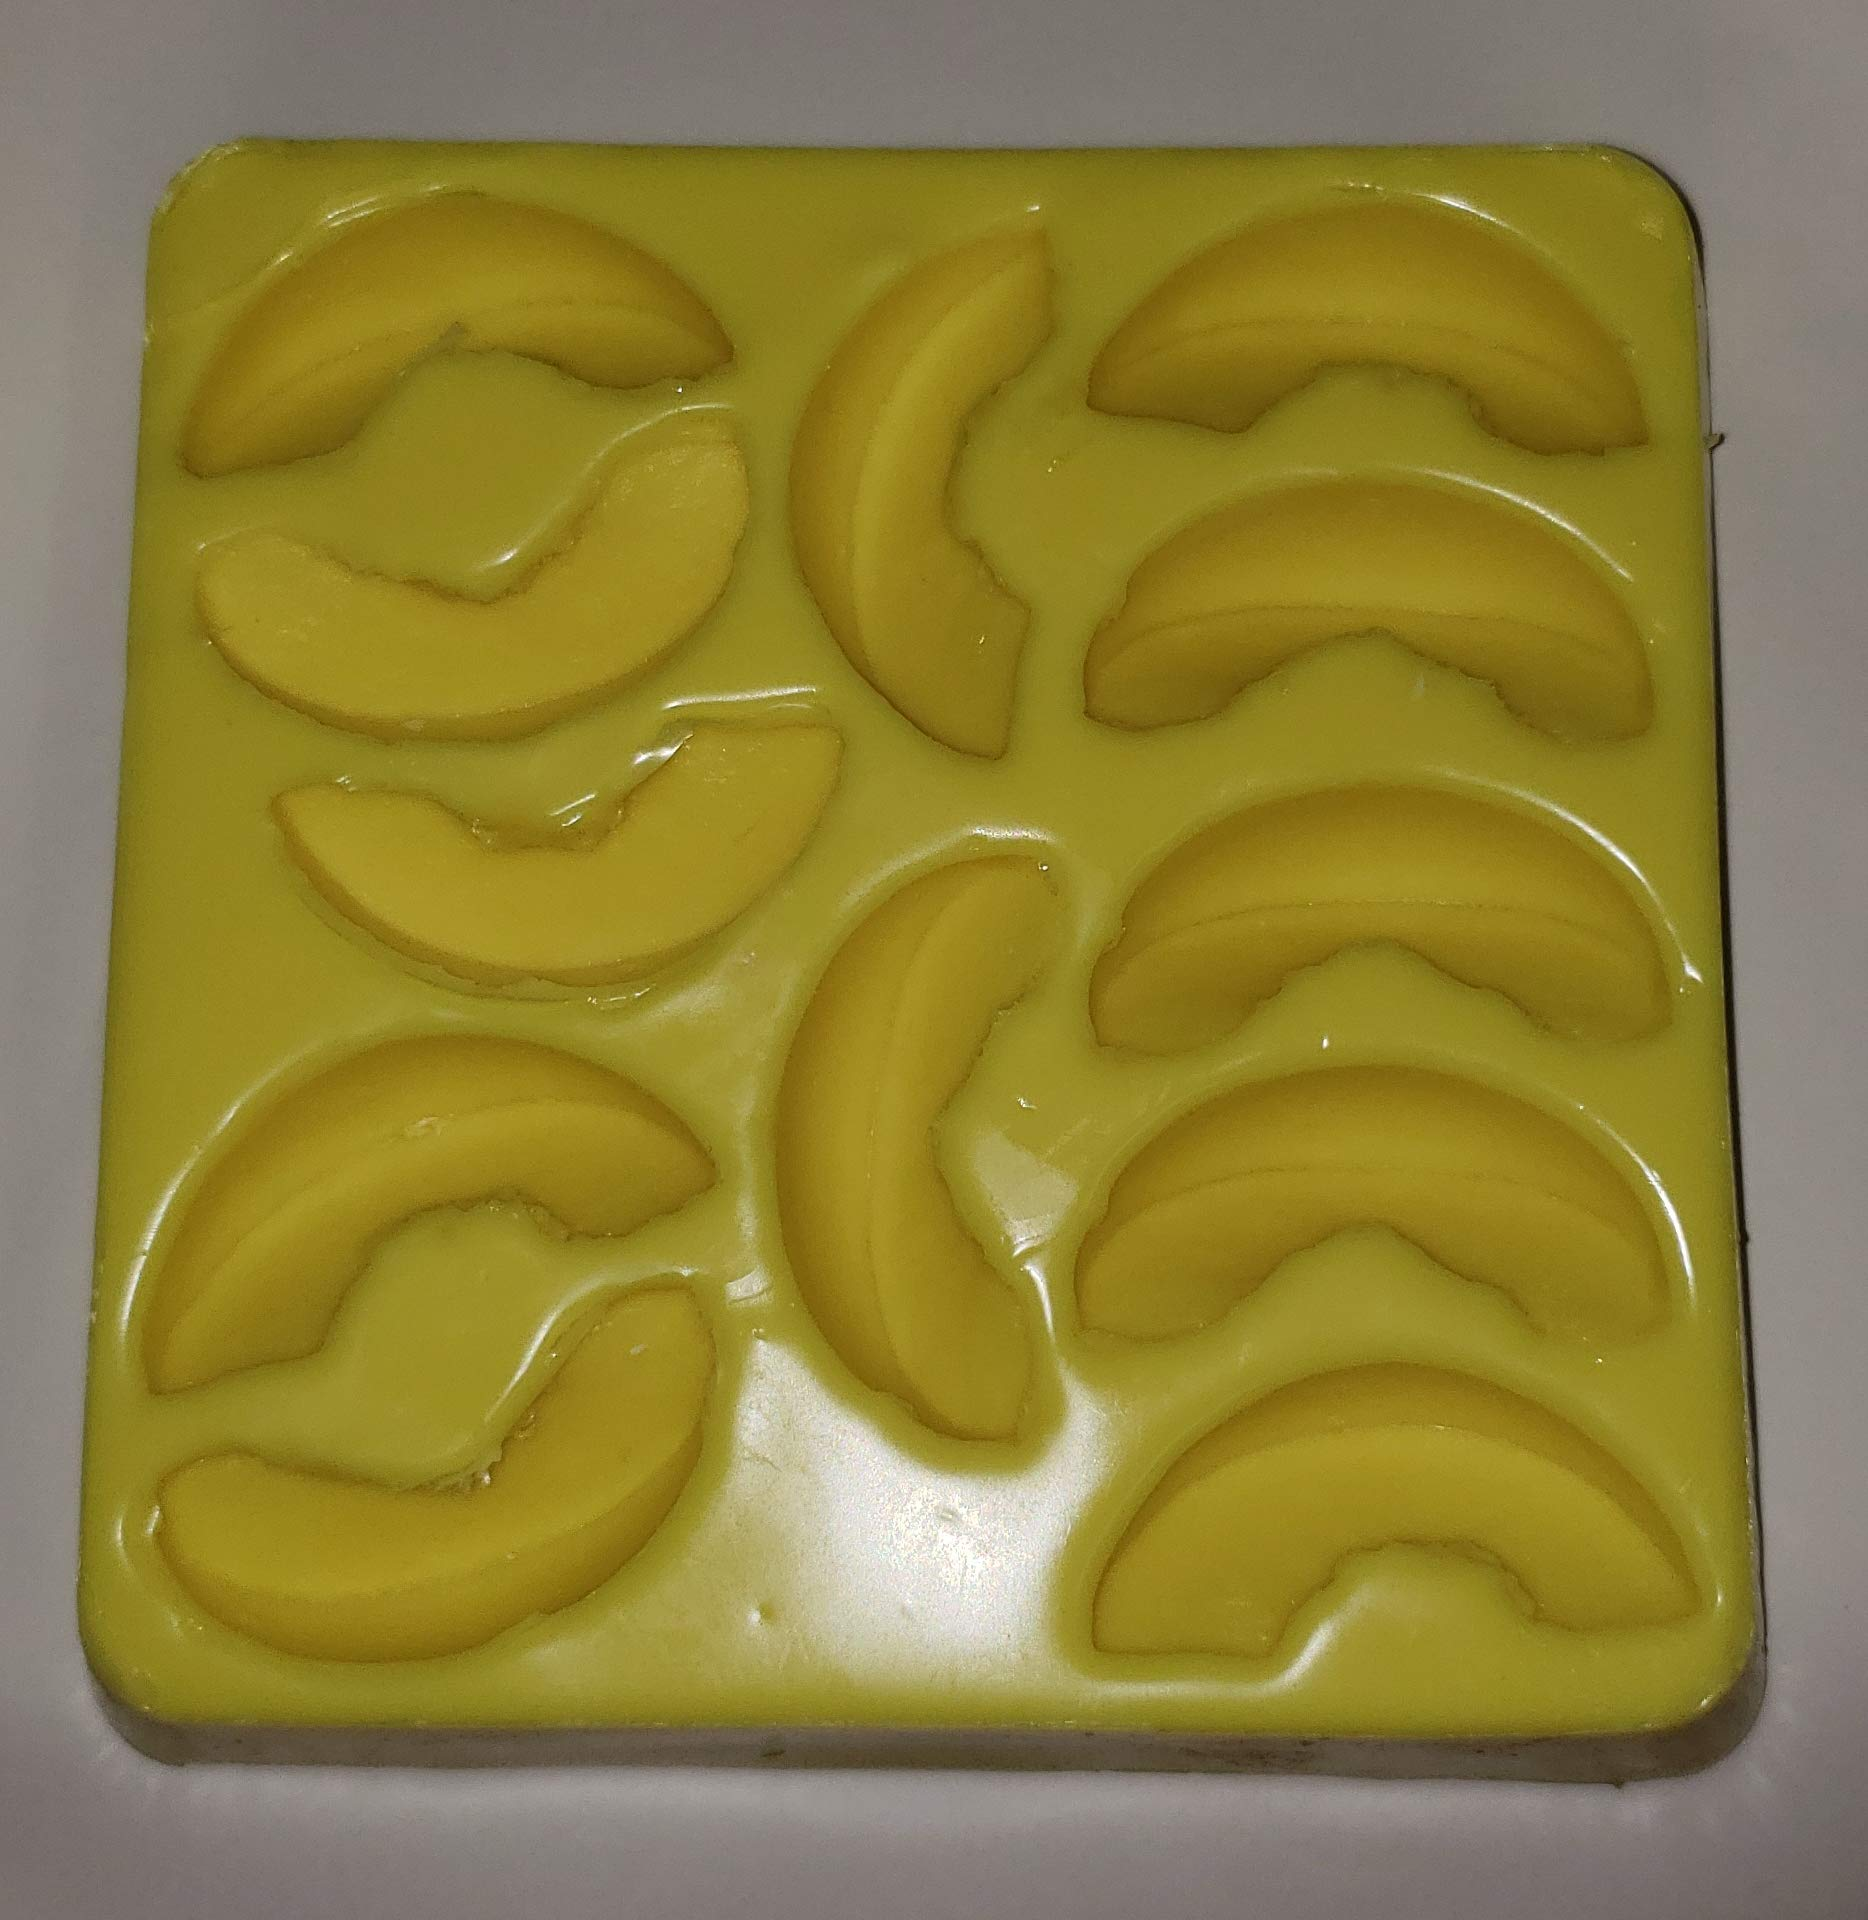 Fruit/Peach/Apple Slices Candle & Soap Mold-12 Cavities